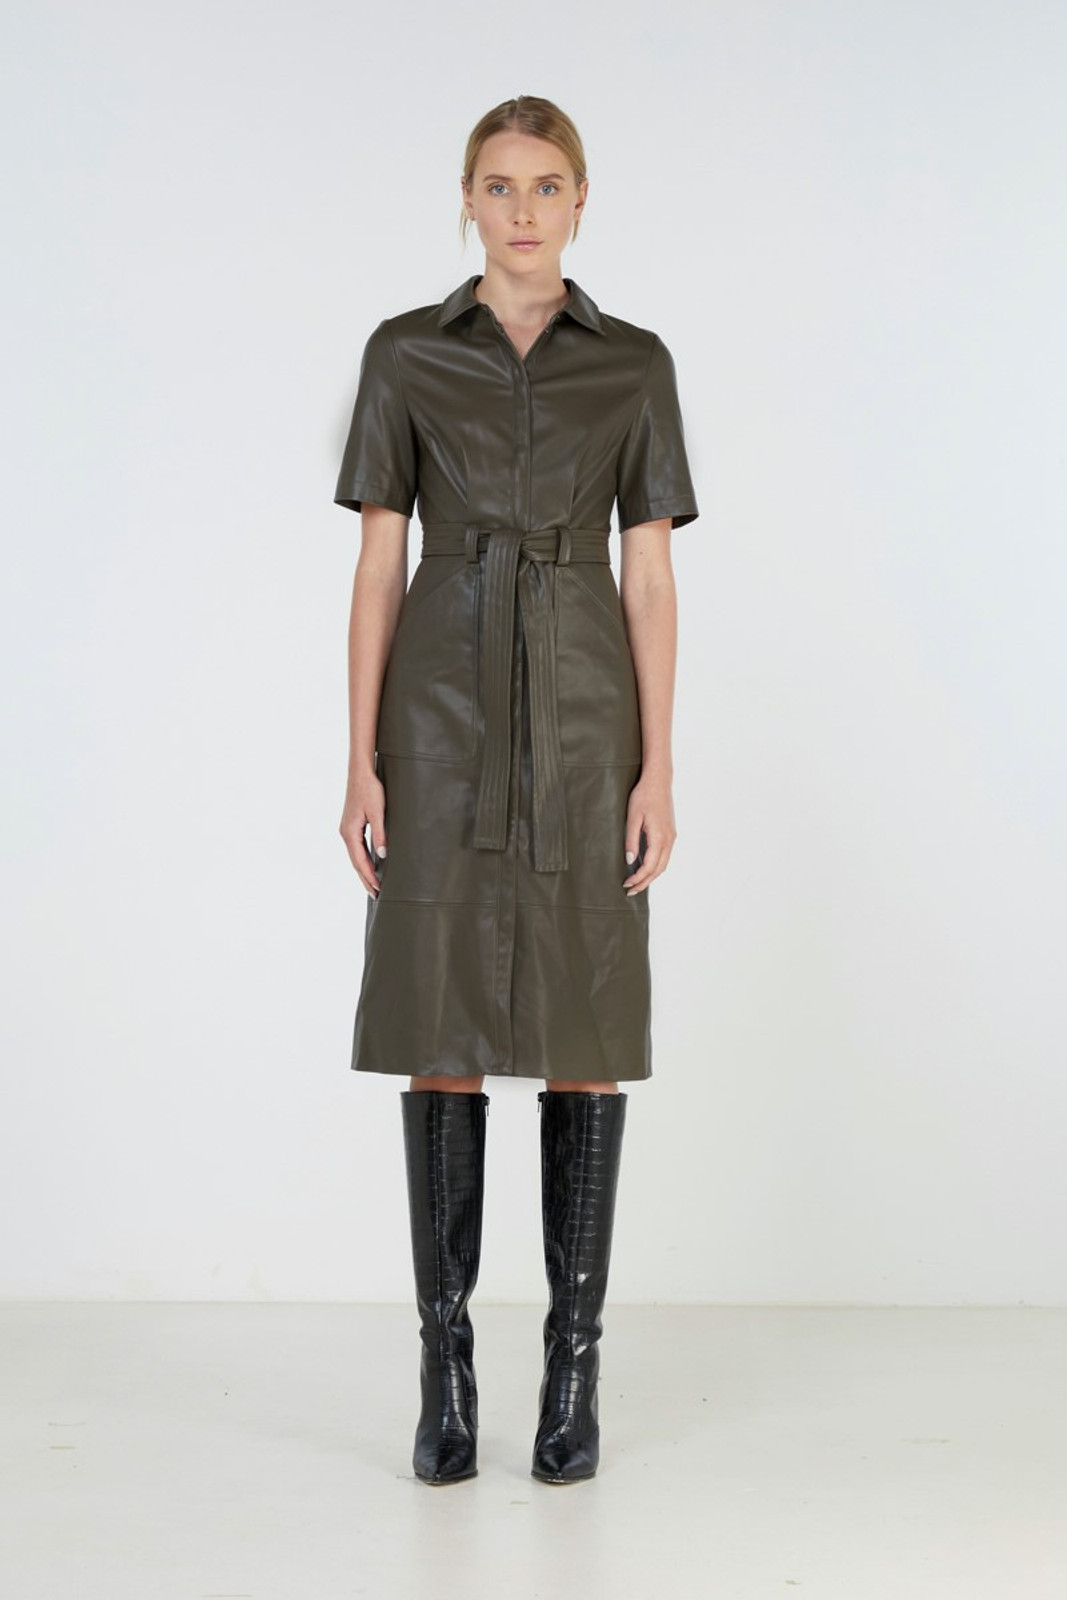 Elka Collective Reflection Dress Green  2